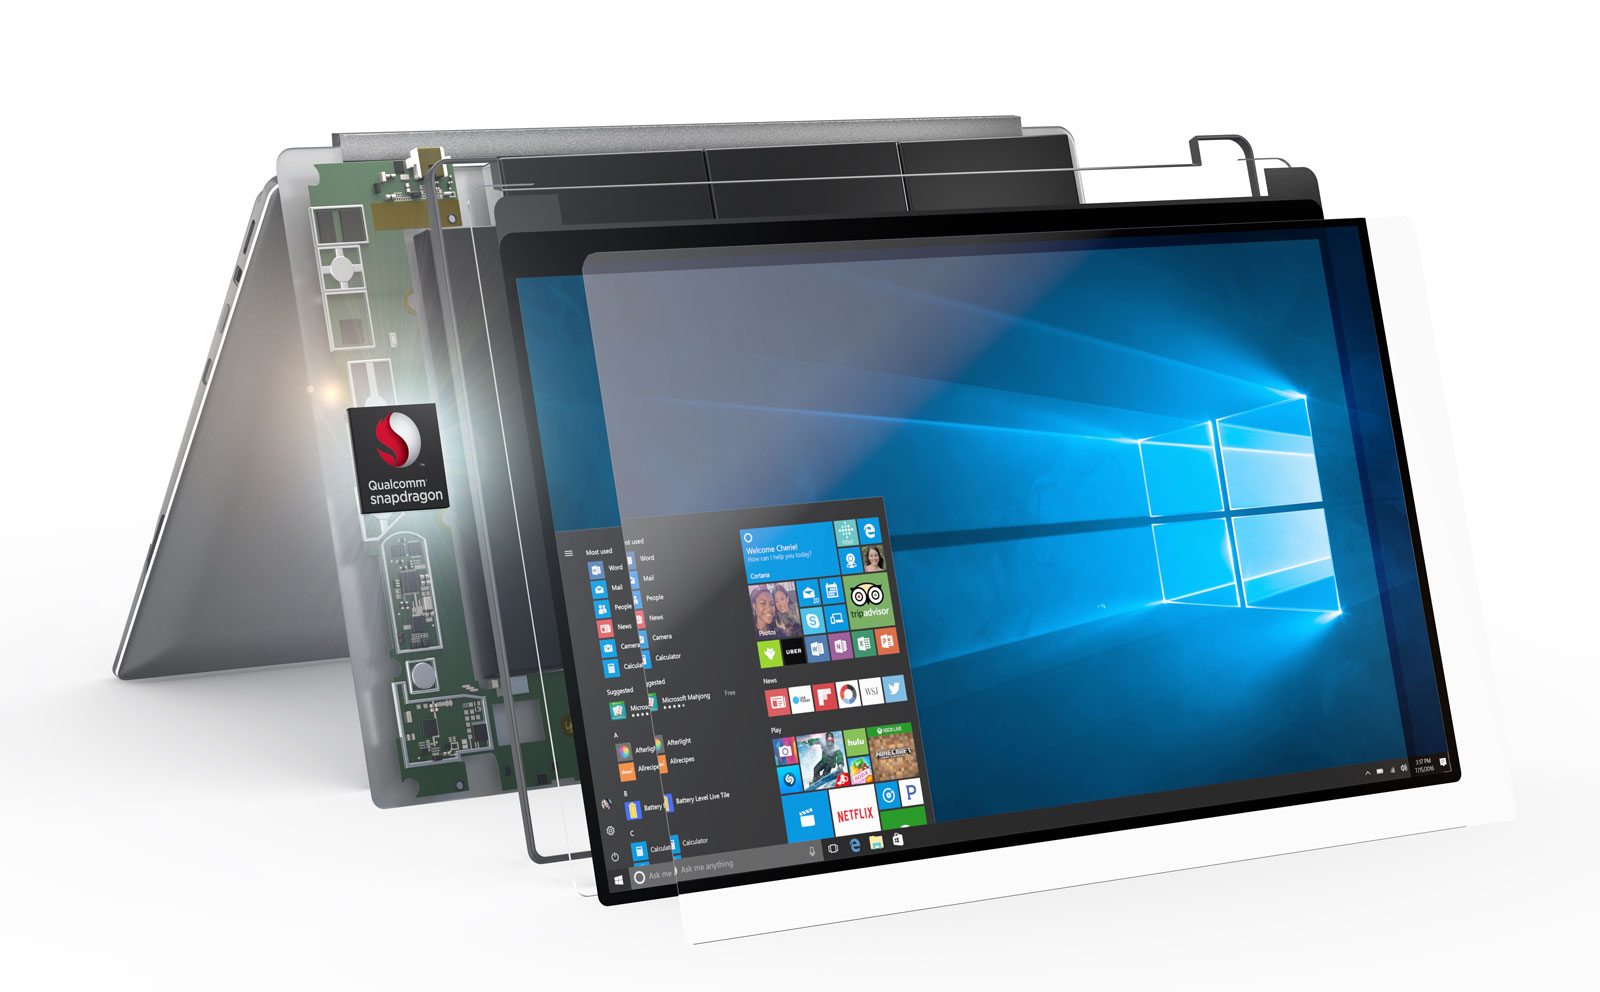 AMD and Qualcomm join forces to power higher-end connected PCs